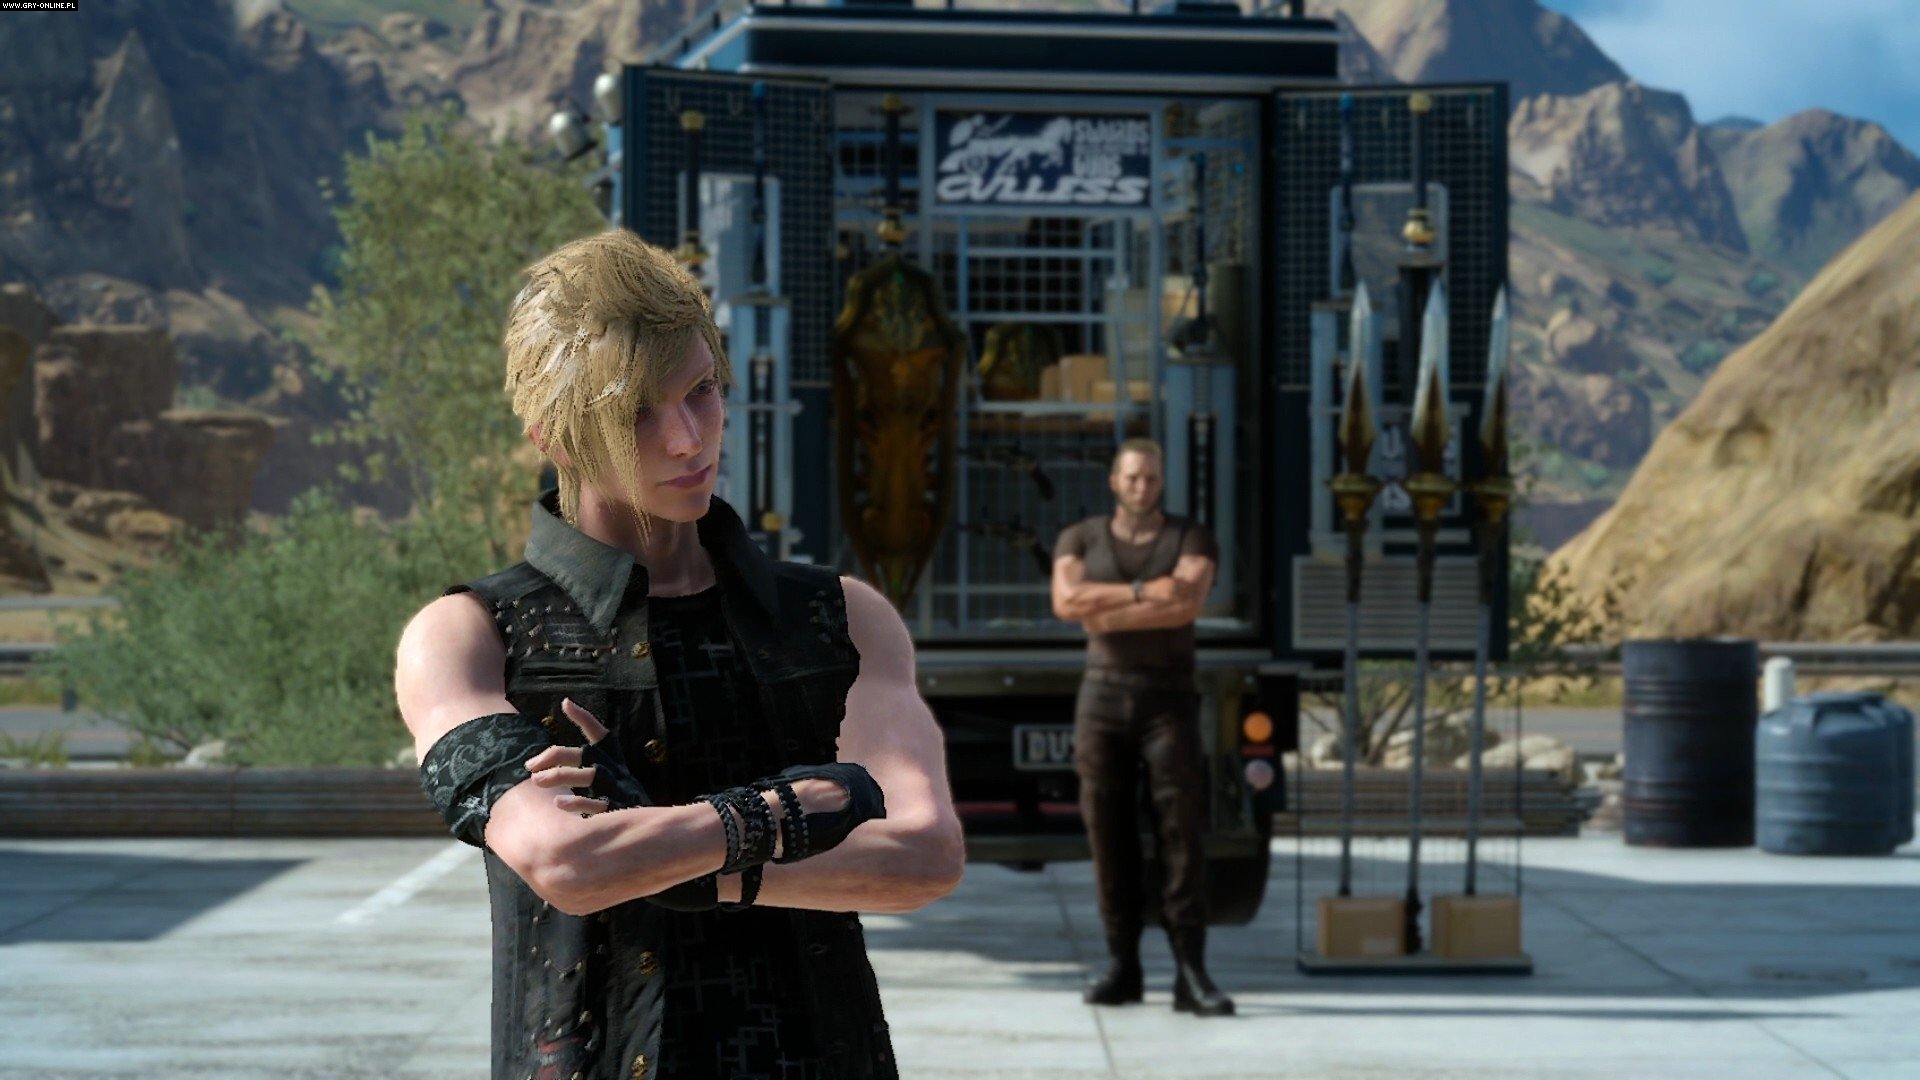 Final Fantasy XV PS4, XONE Gry Screen 275/393, Square-Enix / Eidos